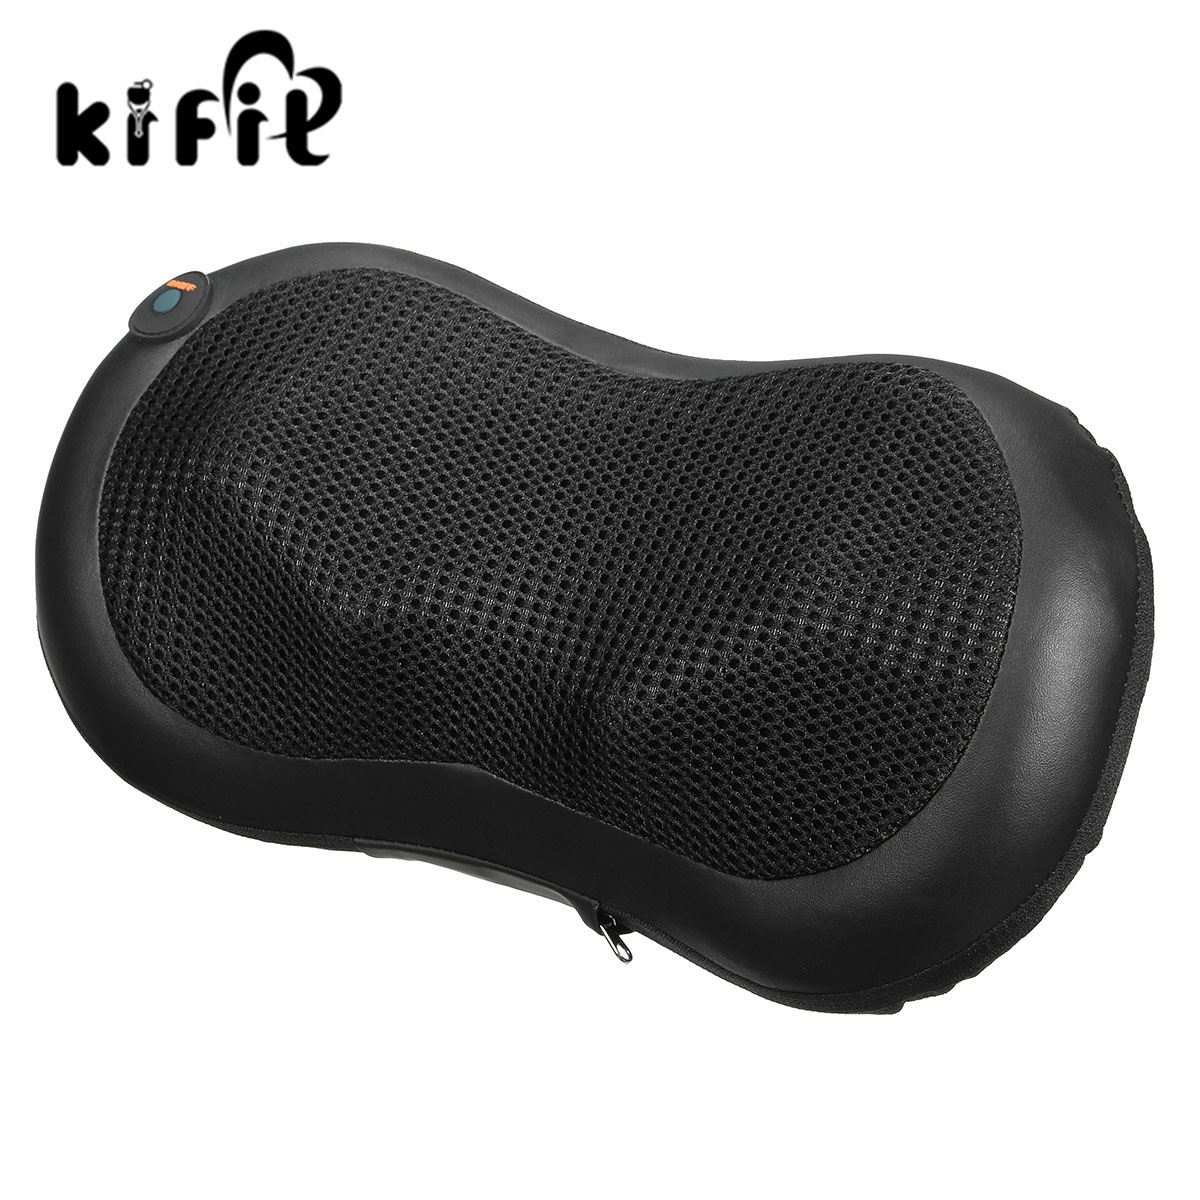 KIFIT Electric Massager Body Lumbar Massage Pillow Cushion Neck Knead Shoulder Back Home Car Health Care Tool kifit convenient handheld ice cooling roller facial skin care beauty face body massage home used health tool